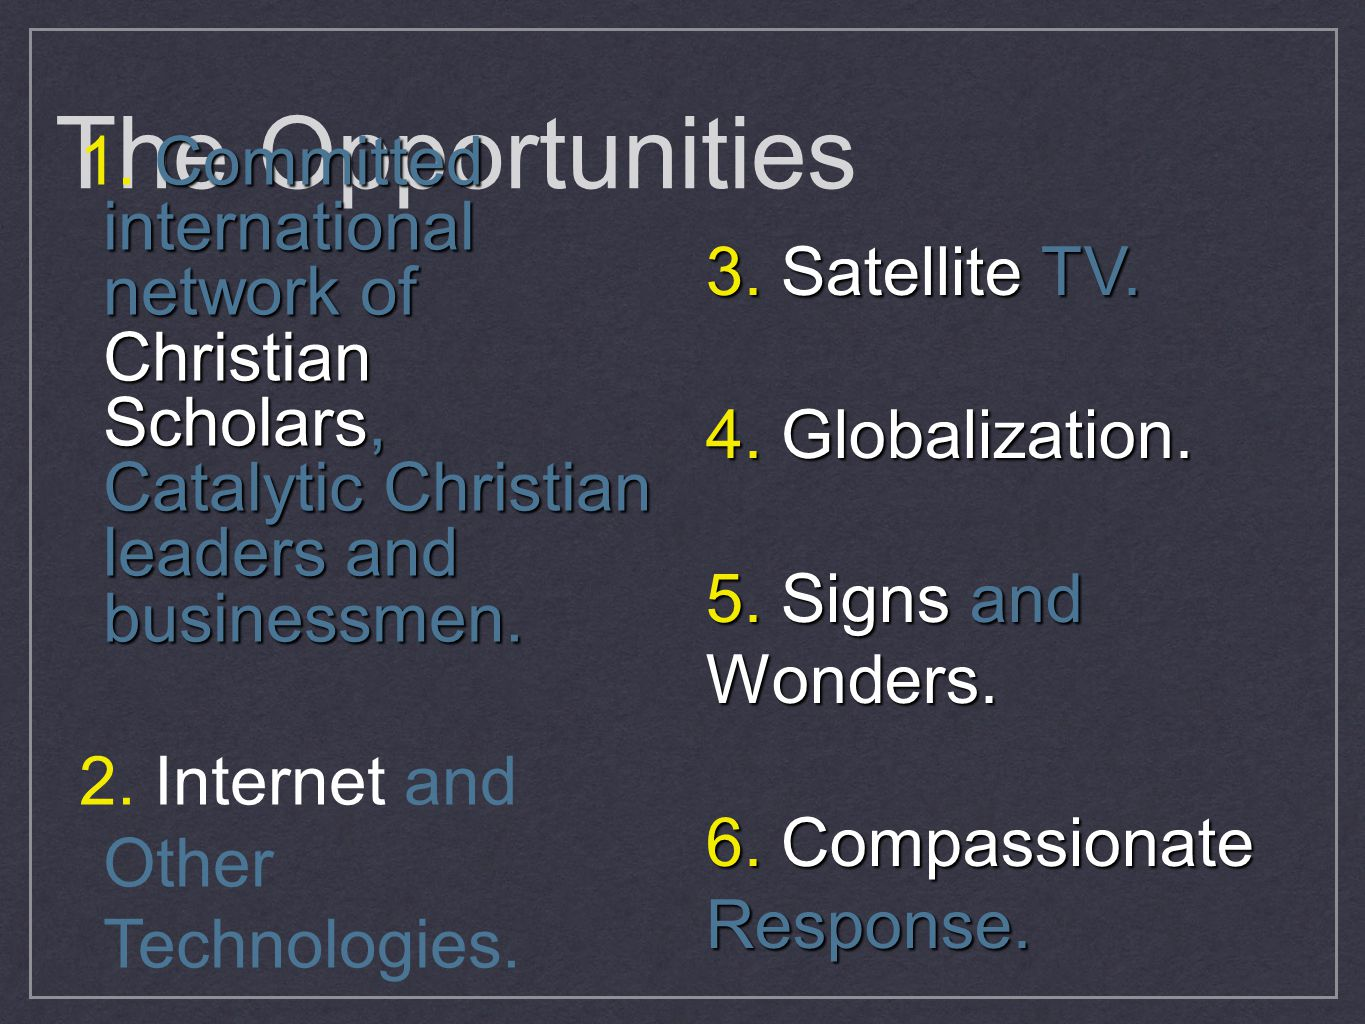 The Opportunities Committed international network of Christian Scholars, Catalytic Christian leaders and businessmen.